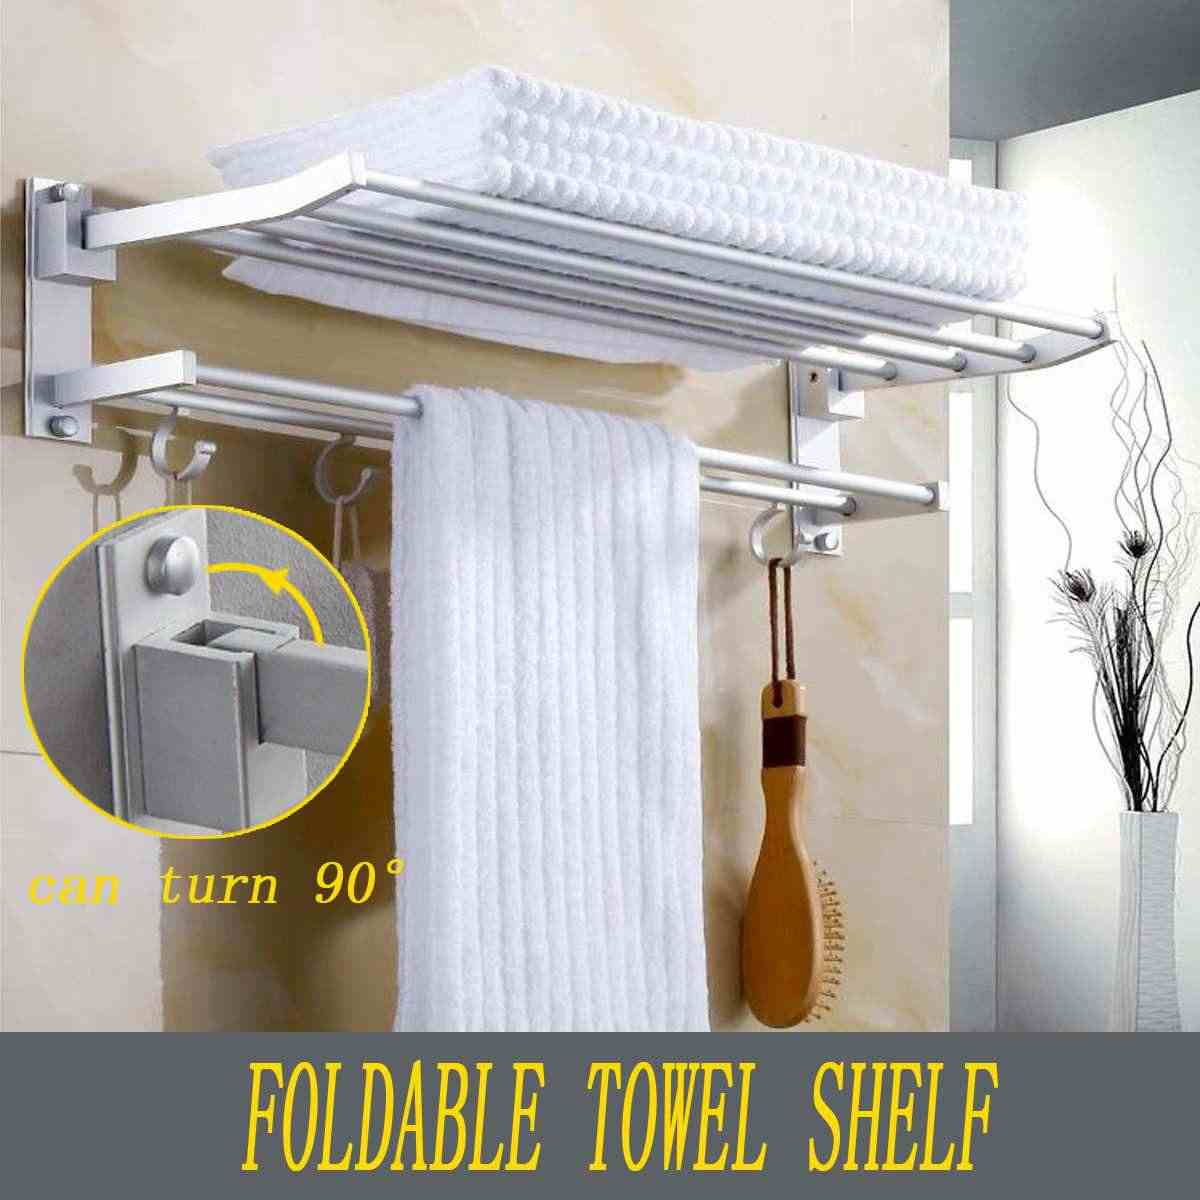 Xueqin Bathroom 2Layer Foldable Towel Racks Towel Rack Wall Mounted Space Aluminum Towel Shelf With Hooks Bath Rails Bars